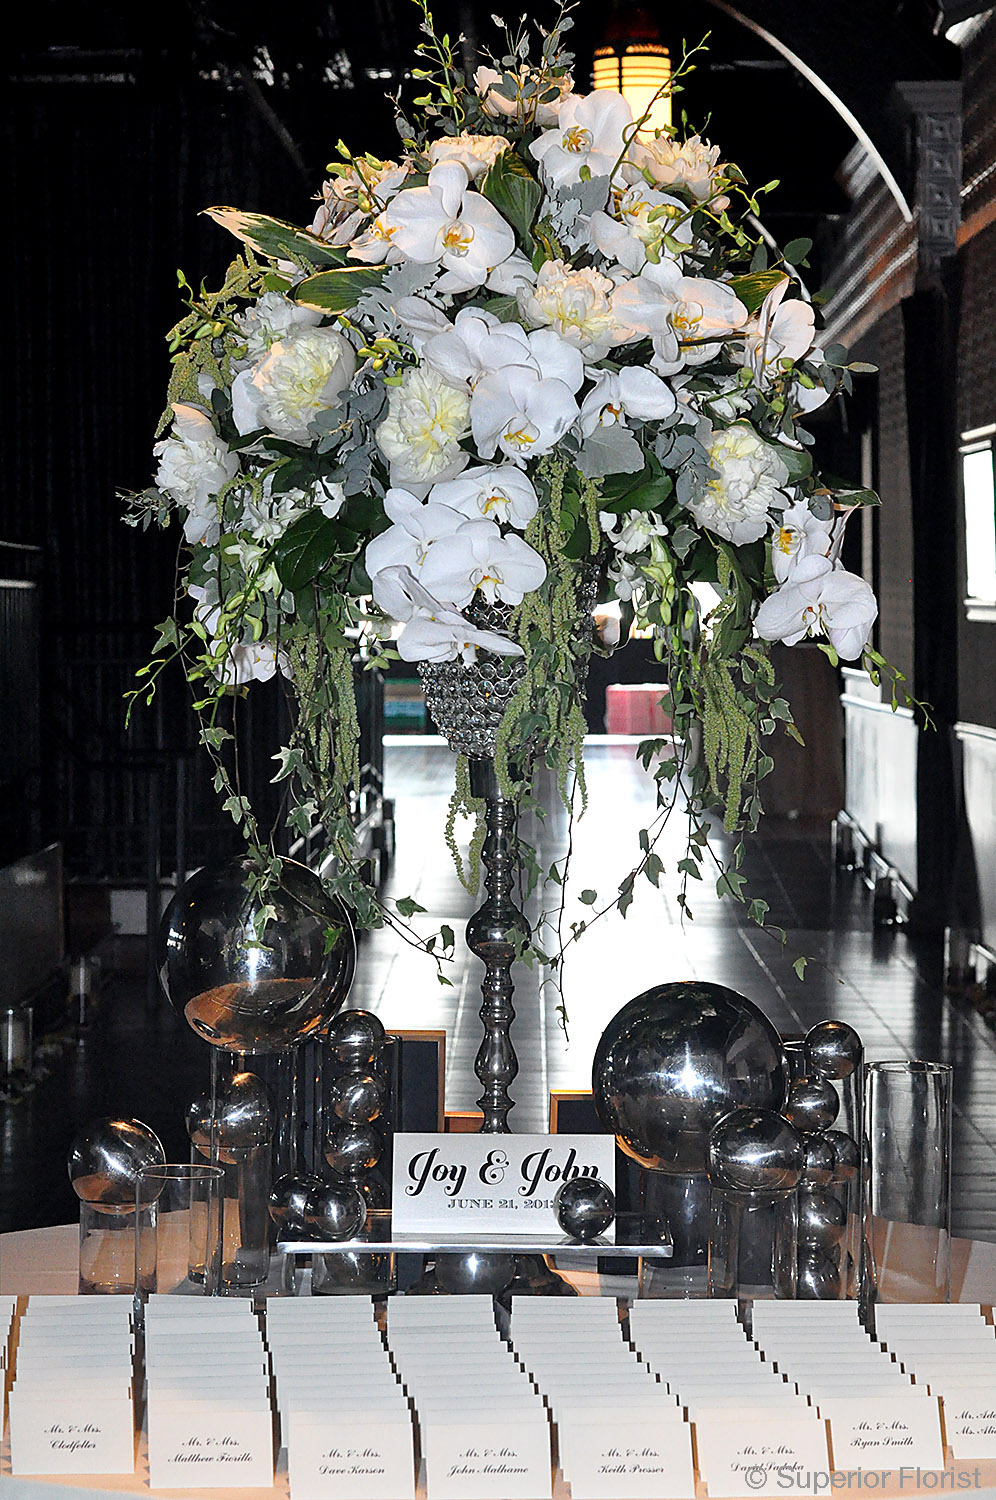 Superior Florist – Weddings – Escort Tables: White and green Phalaenopsis orchids, hanging Amaranthus and white Peonies arranged in a tall, silver and crystal vase.